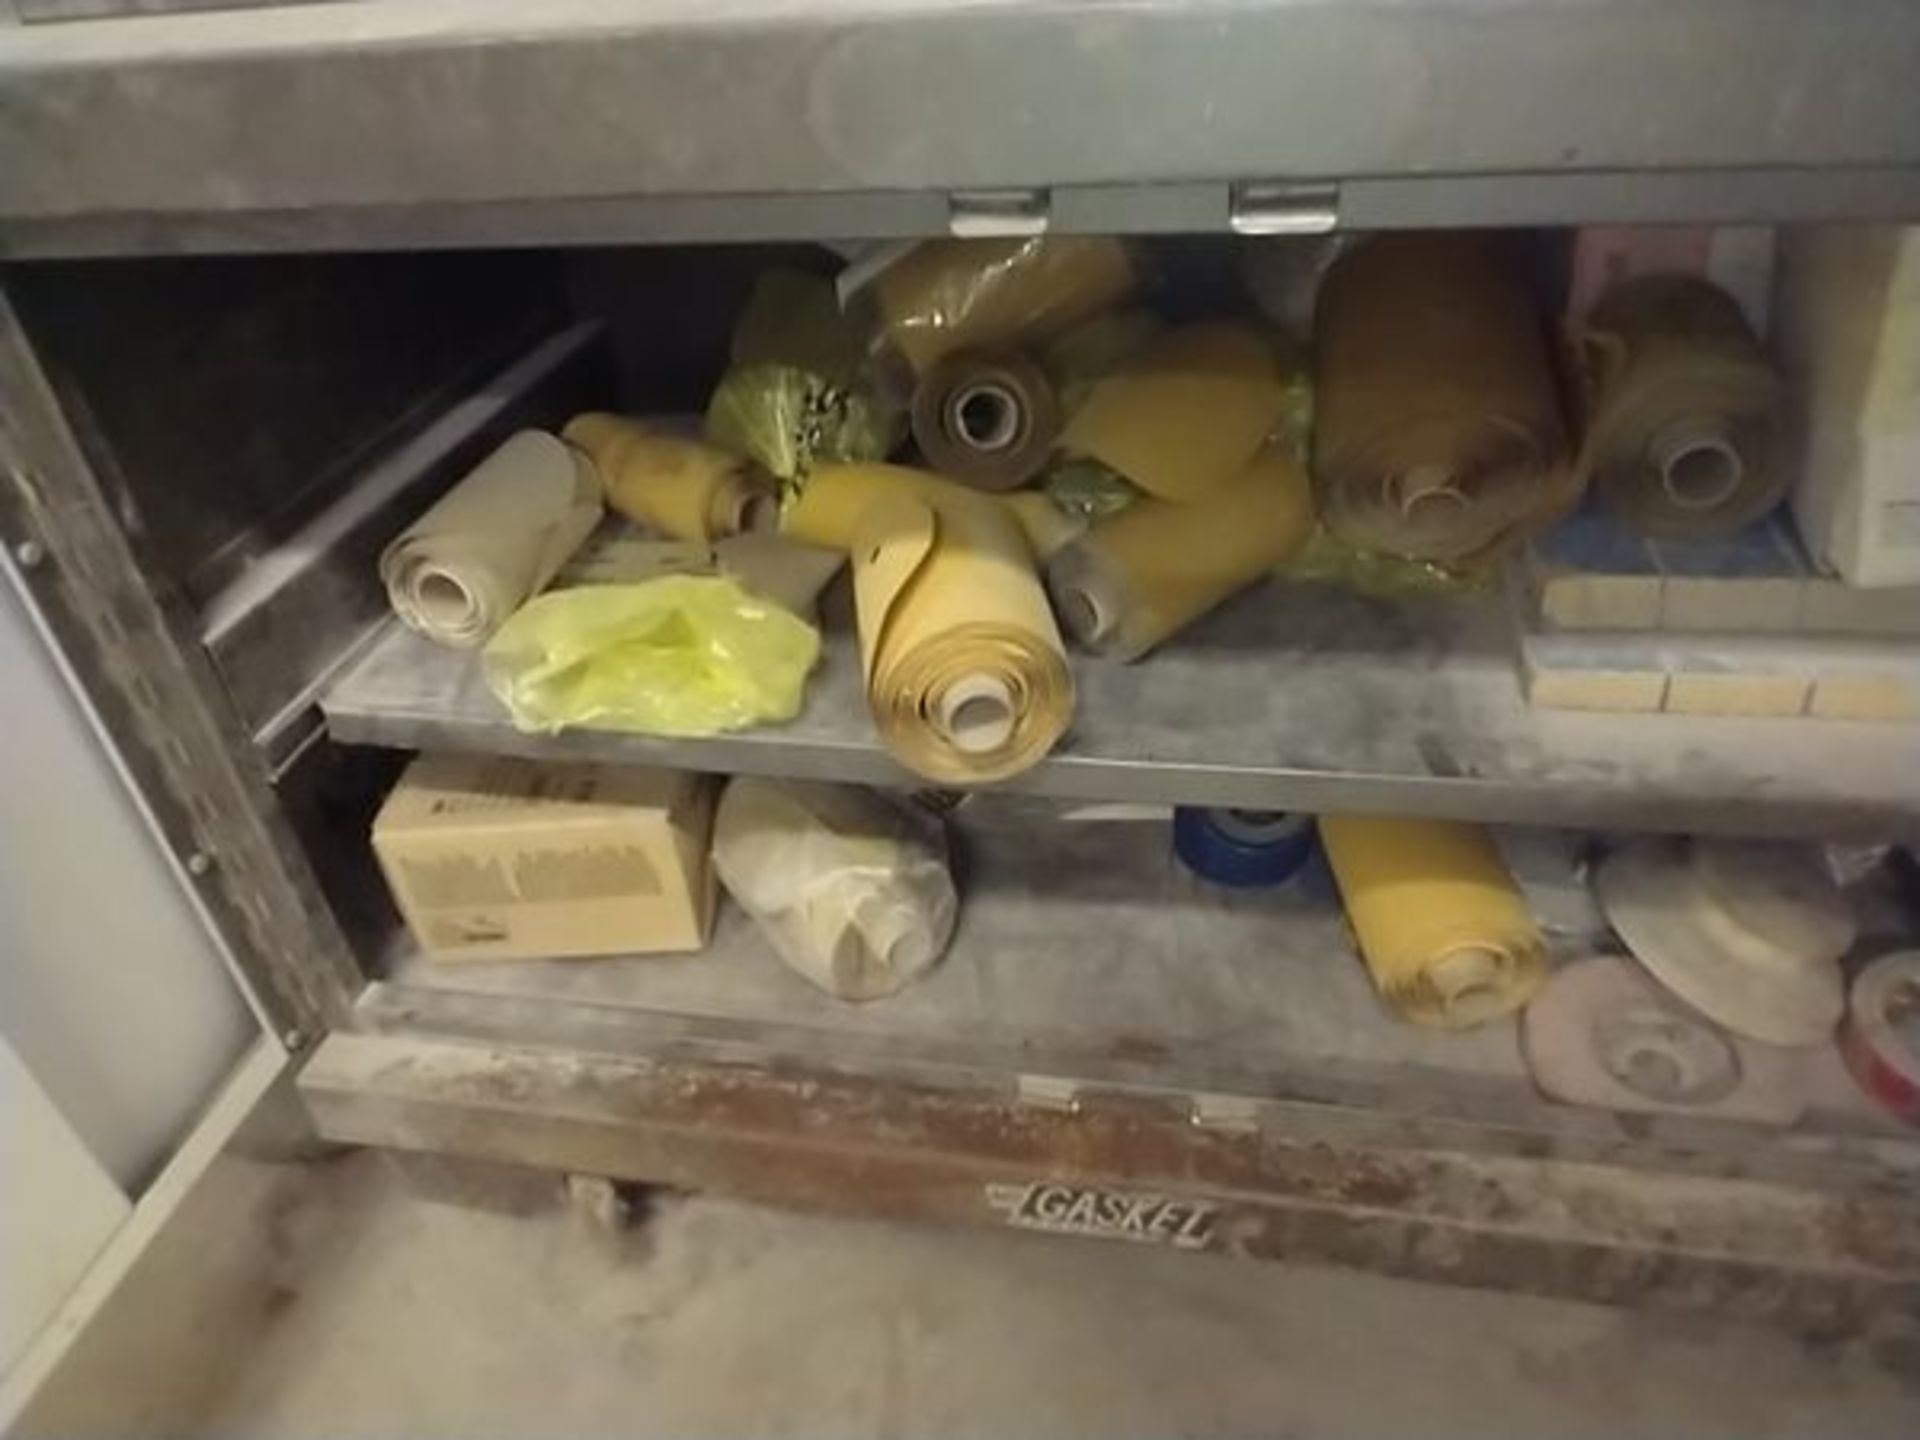 LOT OF ABRASIVE SHEETS, DISCS AND SANDING BLOCKS ON AND INSIDE CABINET (CABINET SOLD SEPARATELY) - Image 7 of 7